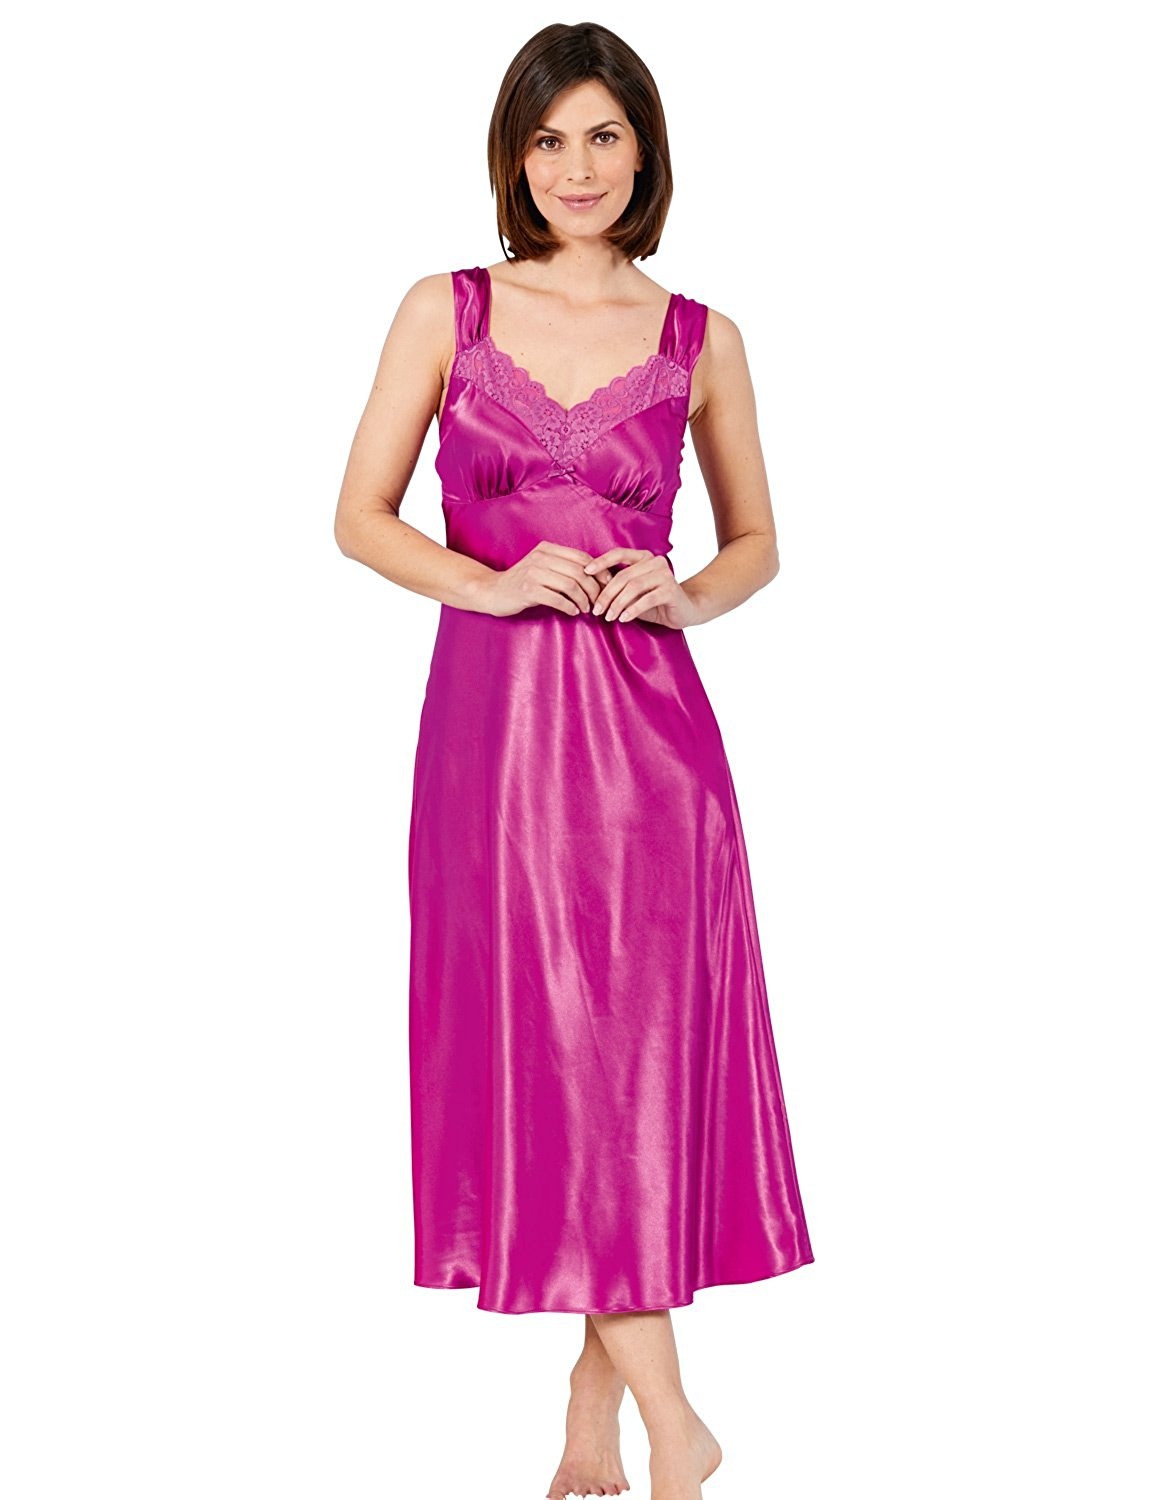 ce5b21e2190 Get Quotations · Amber Ladies Luxury Satin and Lace Nightdress